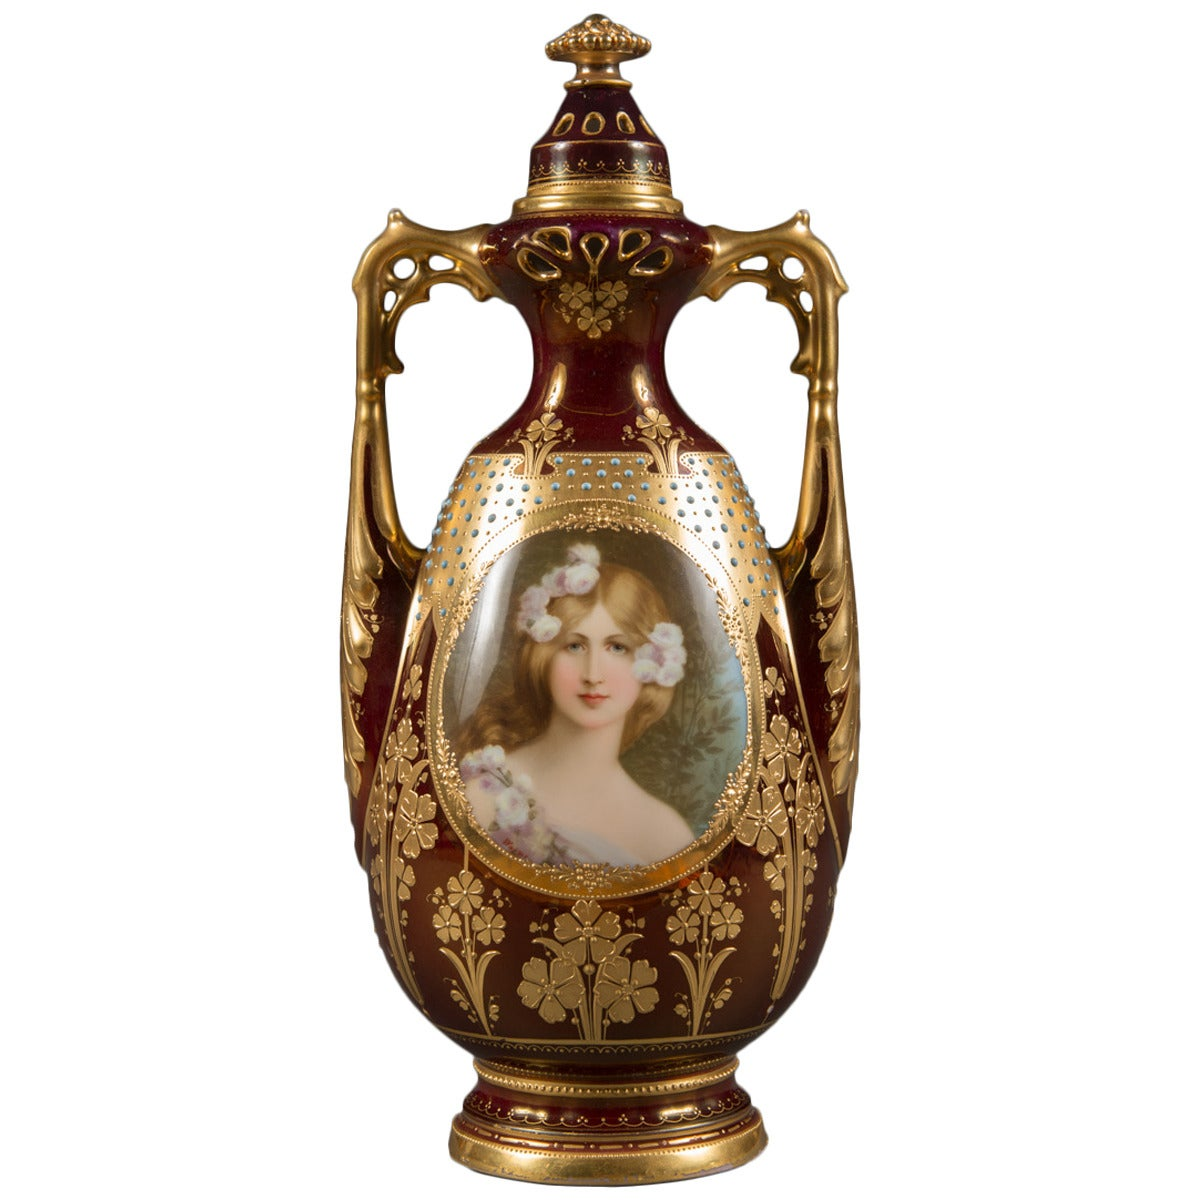 Royal Vienna Porcelain Jeweled Iridescent Portrait Vase